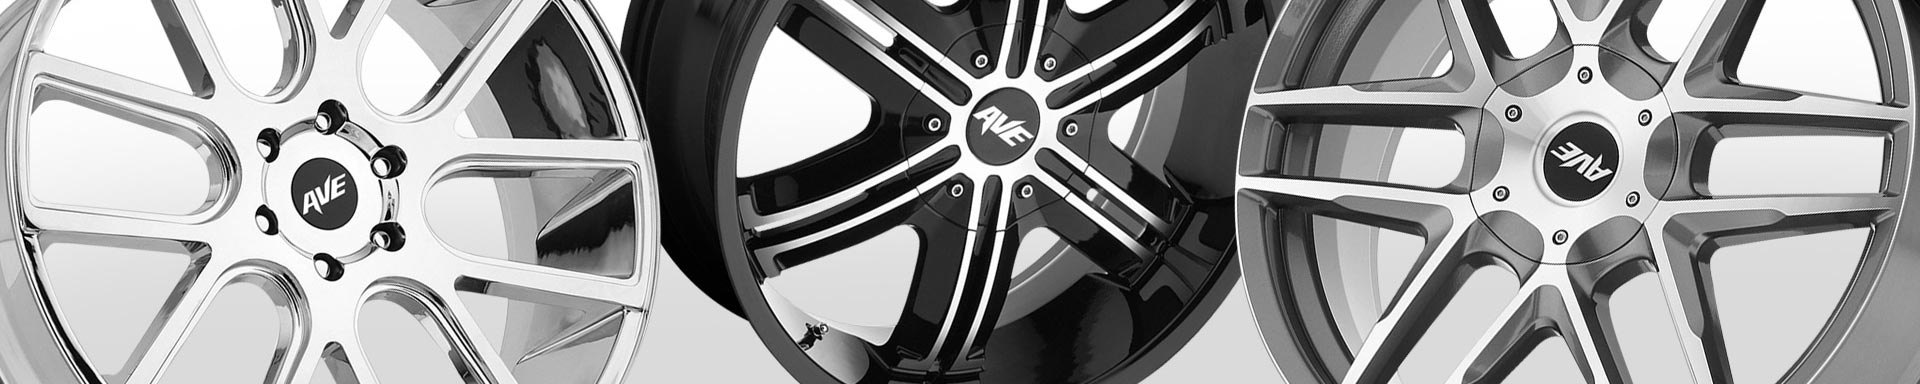 Universal AVENUE WHEELS & RIMS